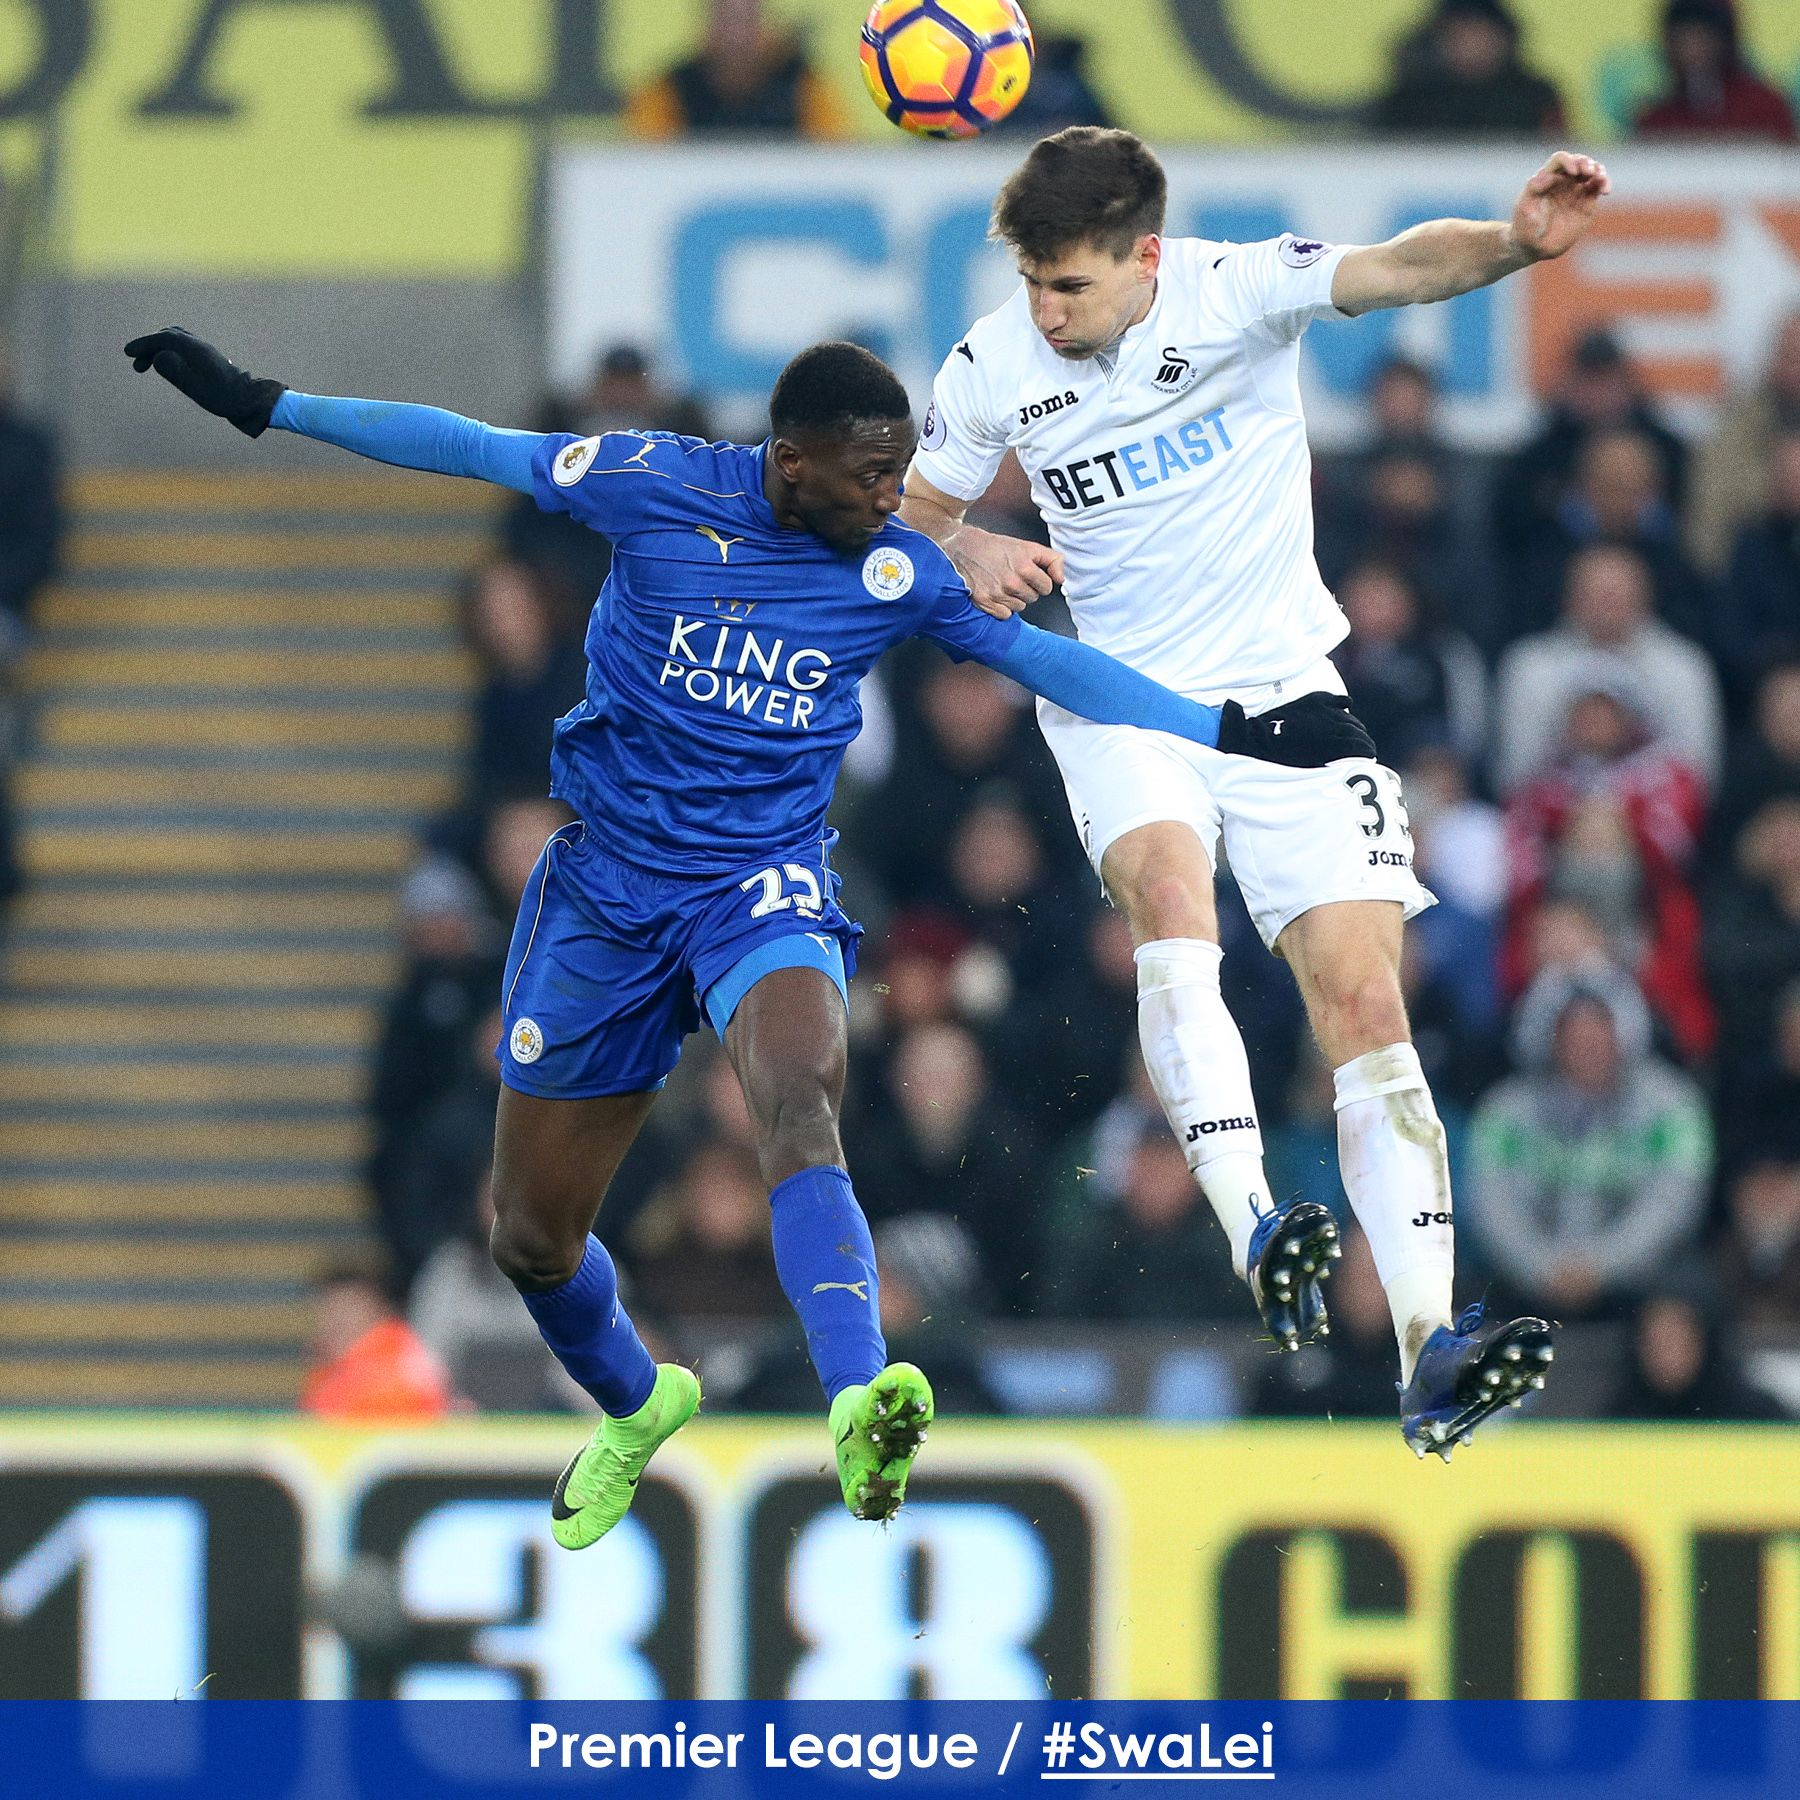 Ndidi In Action, Musa Benched As Swansea Compound Leicester Woes